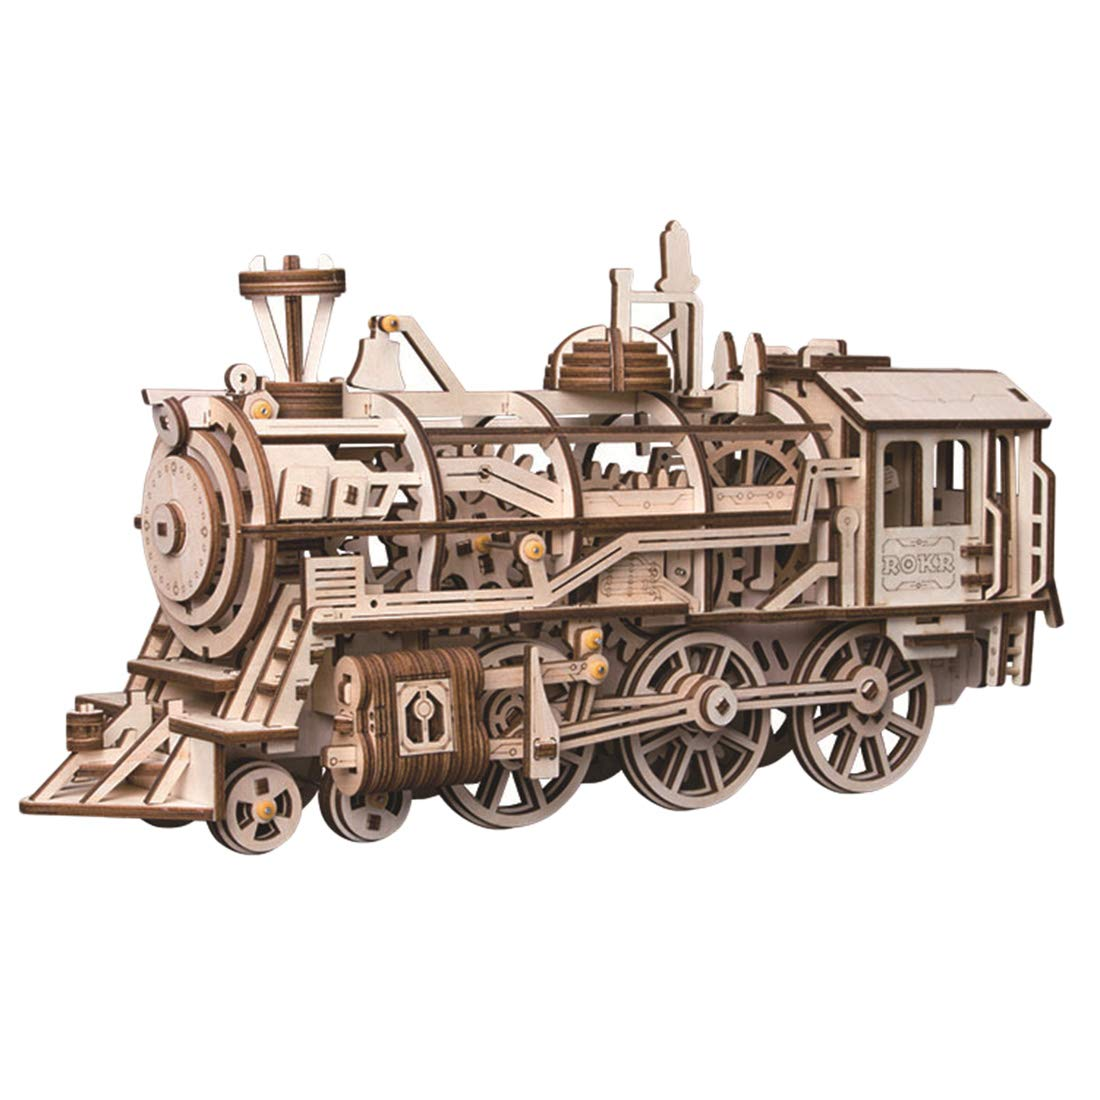 Locomotive Assembly 3-D Puzzles Wooden Craft DIY Kits Brain Teaser Building Toys